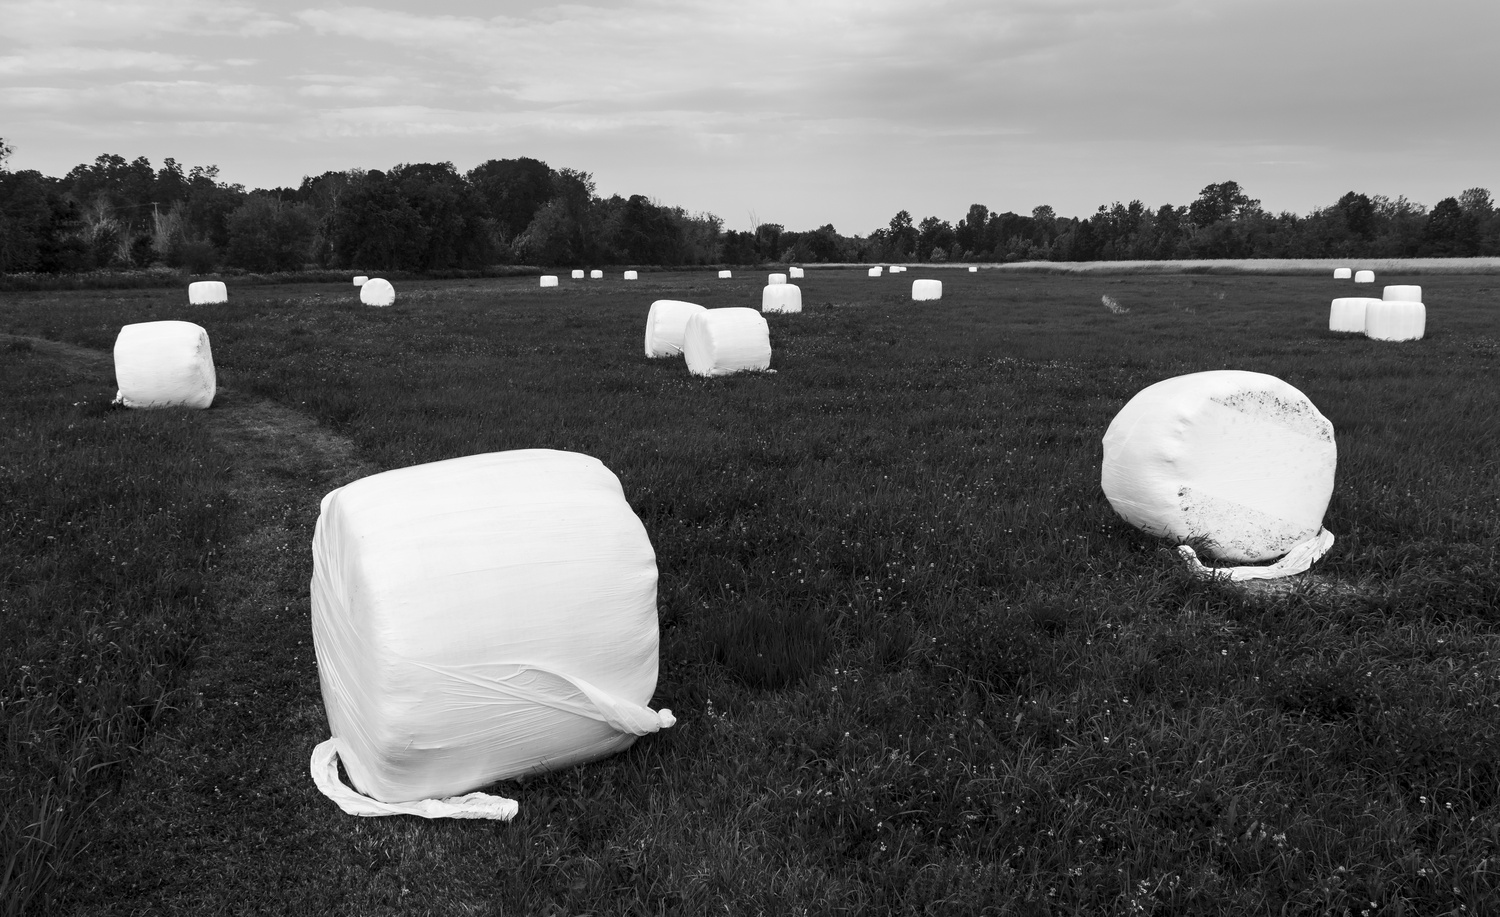 Hay Bales study #1 by Alan Brown